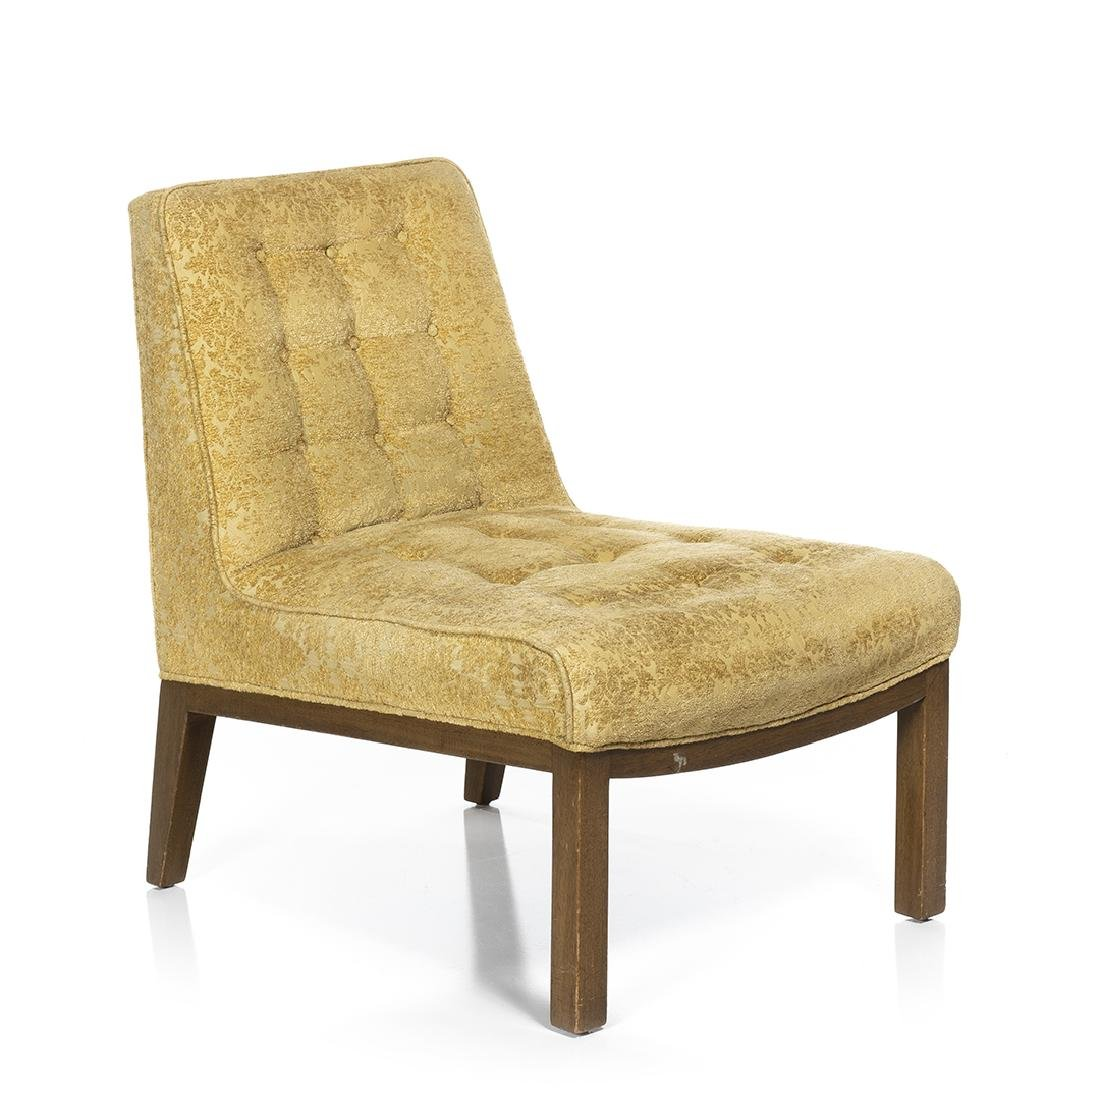 Edward Wormley Slipper Chair